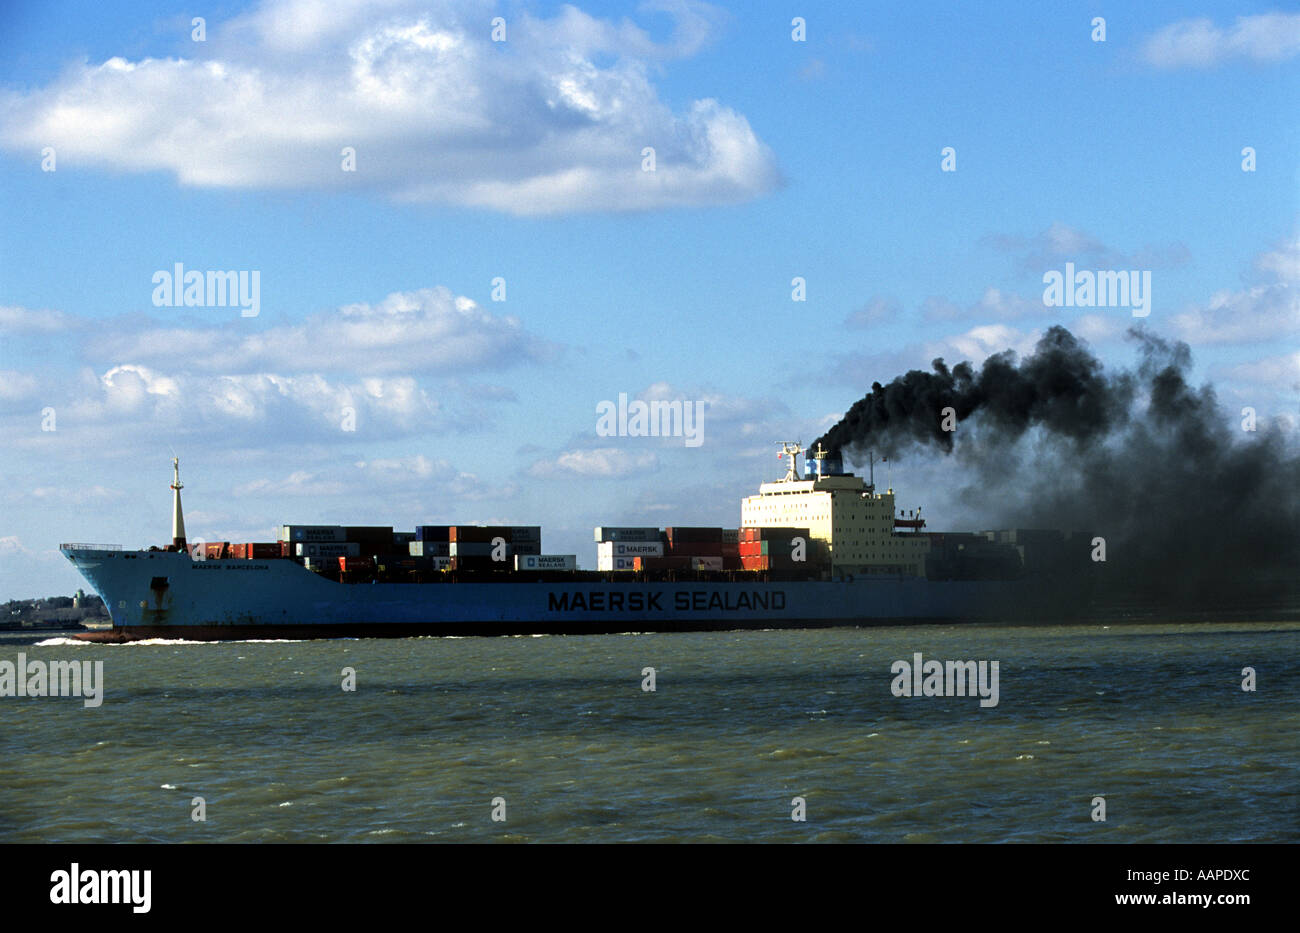 A container ship, Port of Felixstowe, Suffolk, Britain's largest container port. - Stock Image